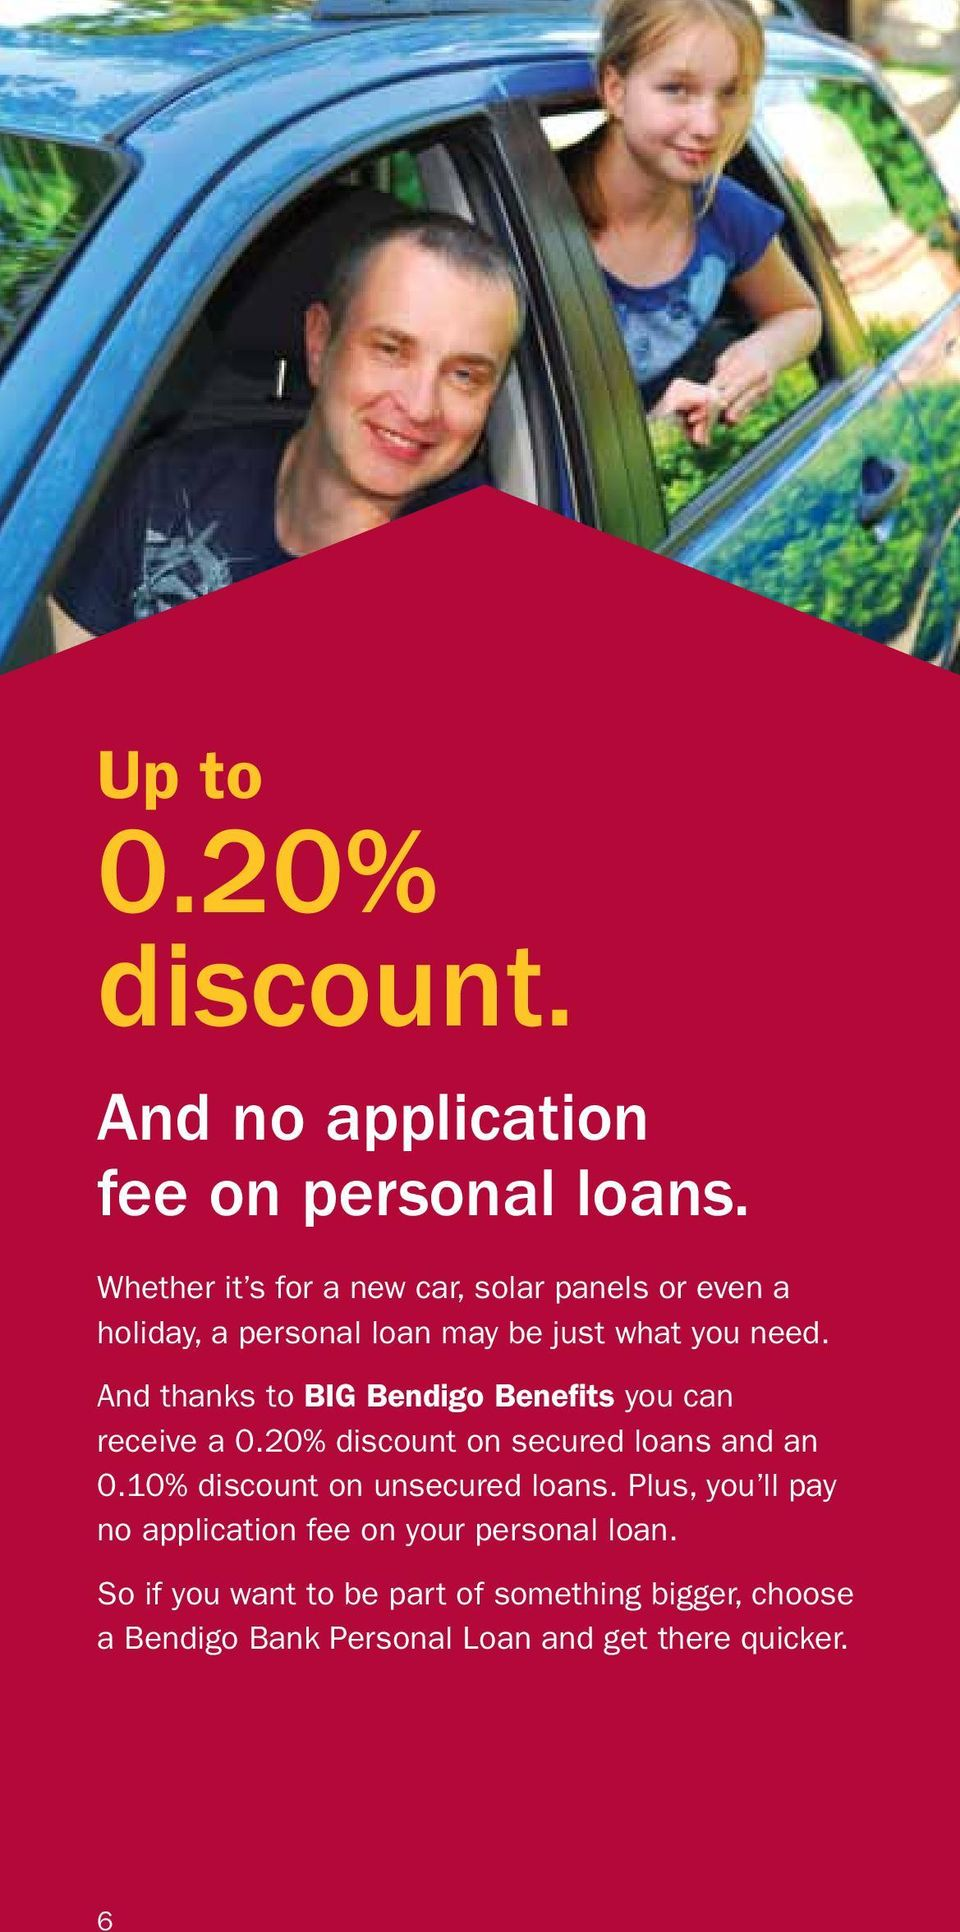 And thanks to BIG Bendigo Benefits you can receive a 0.20% discount on secured loans and an 0.